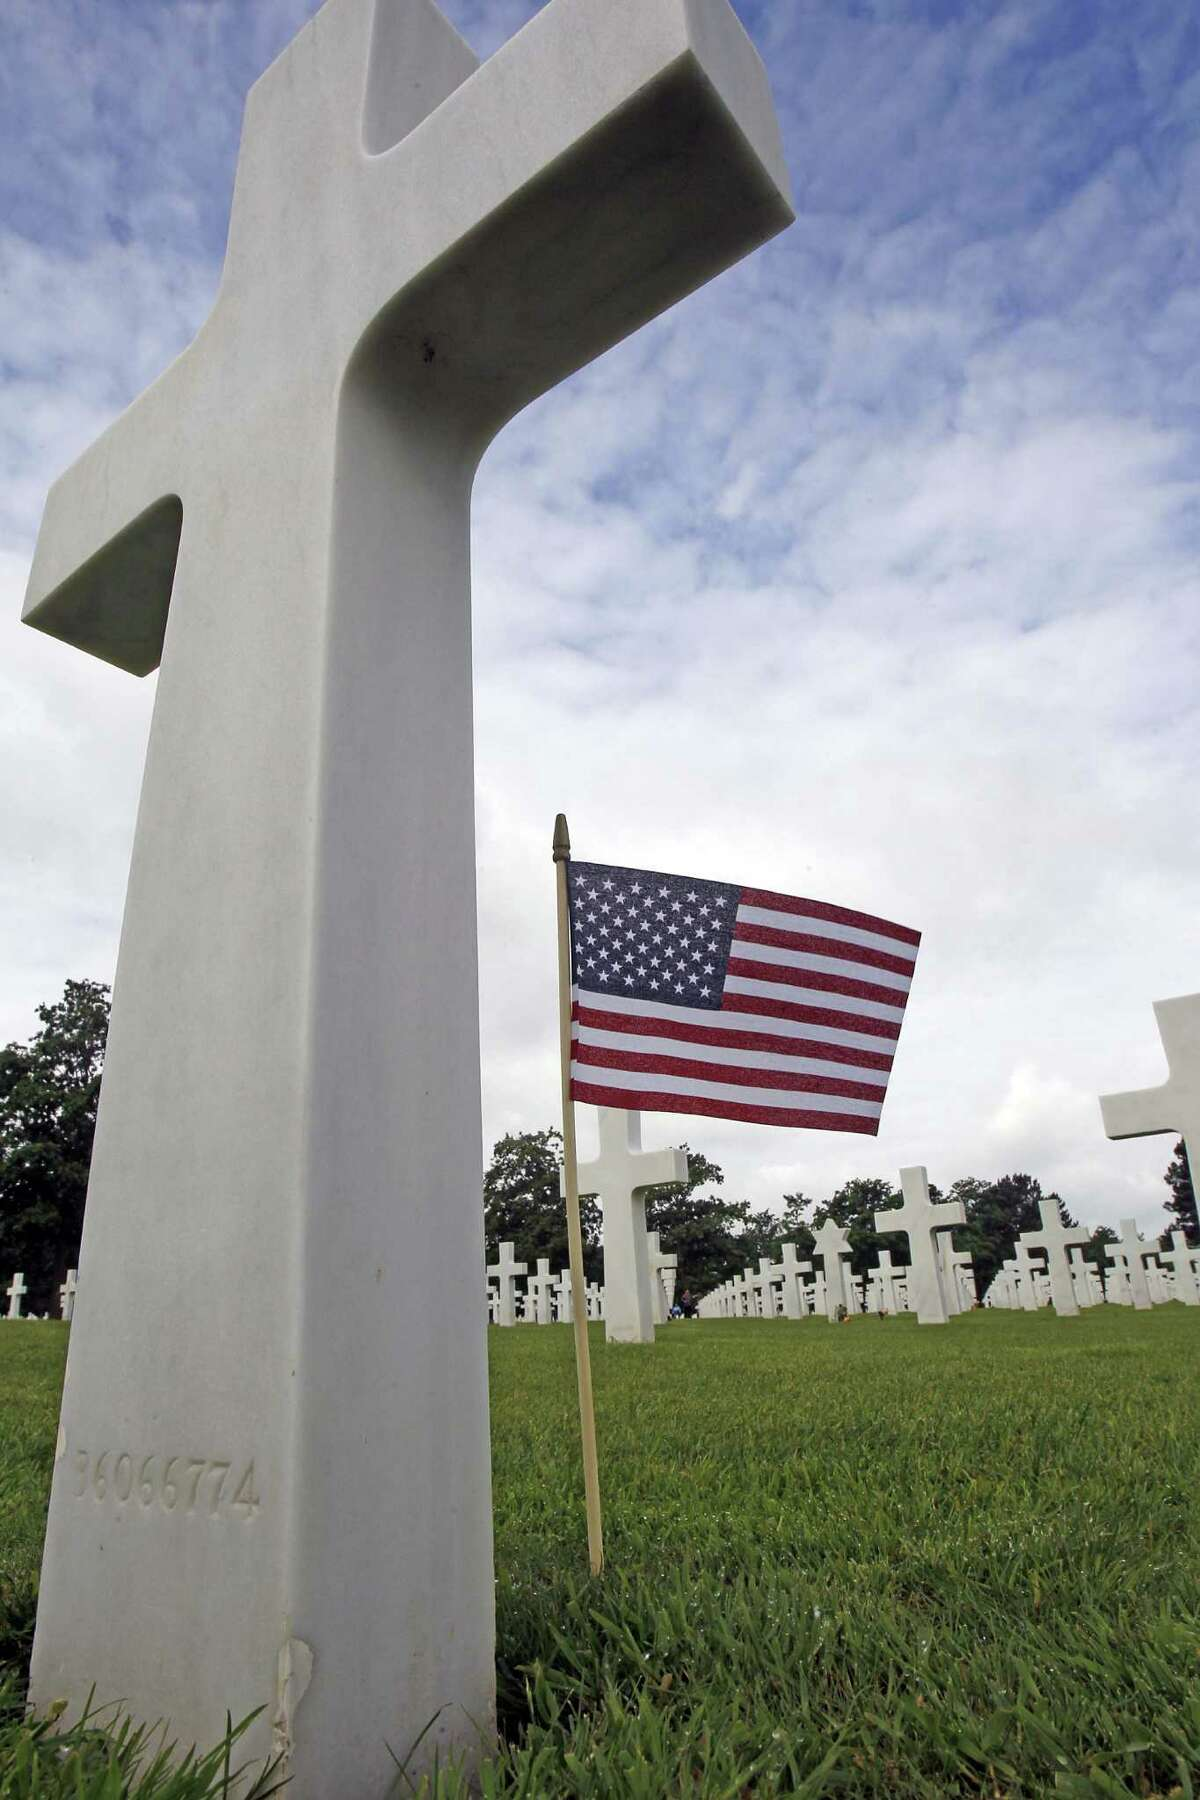 A U.S. flag flies between graves at the Colleville American military cemetery, in Colleville sur Mer, western France, Wednesday June 6, 2012, as part of the commemoration of the 68th anniversary of D-Day.(AP Photo/Remy de la Mauviniere)